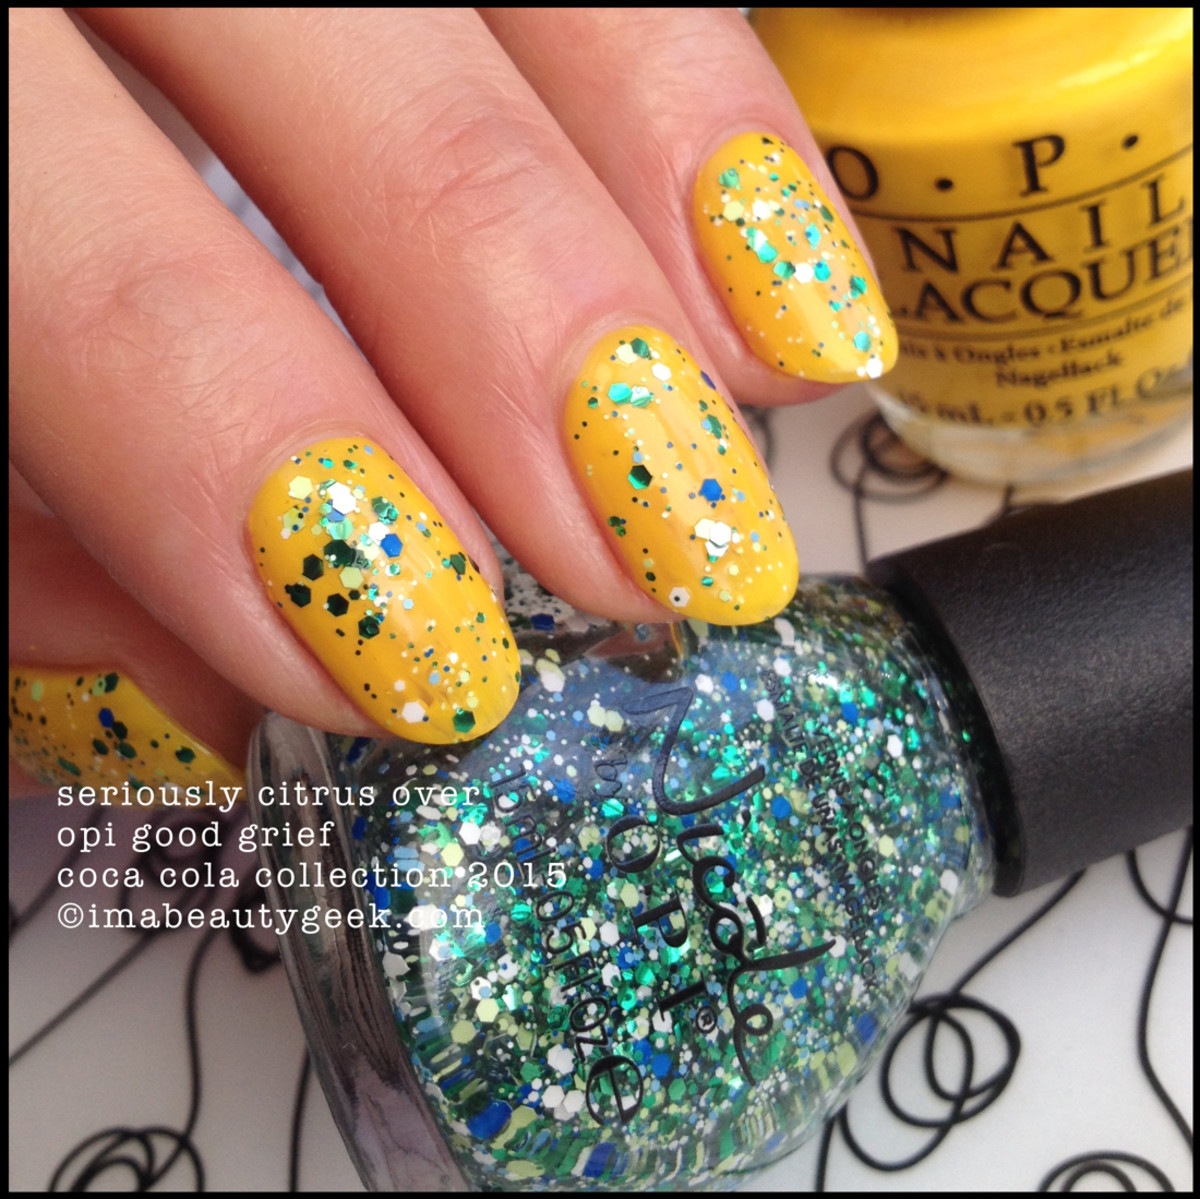 Nicole by OPI Coca Cola Collection Seriously Citrus over OPI Good Grief 2015